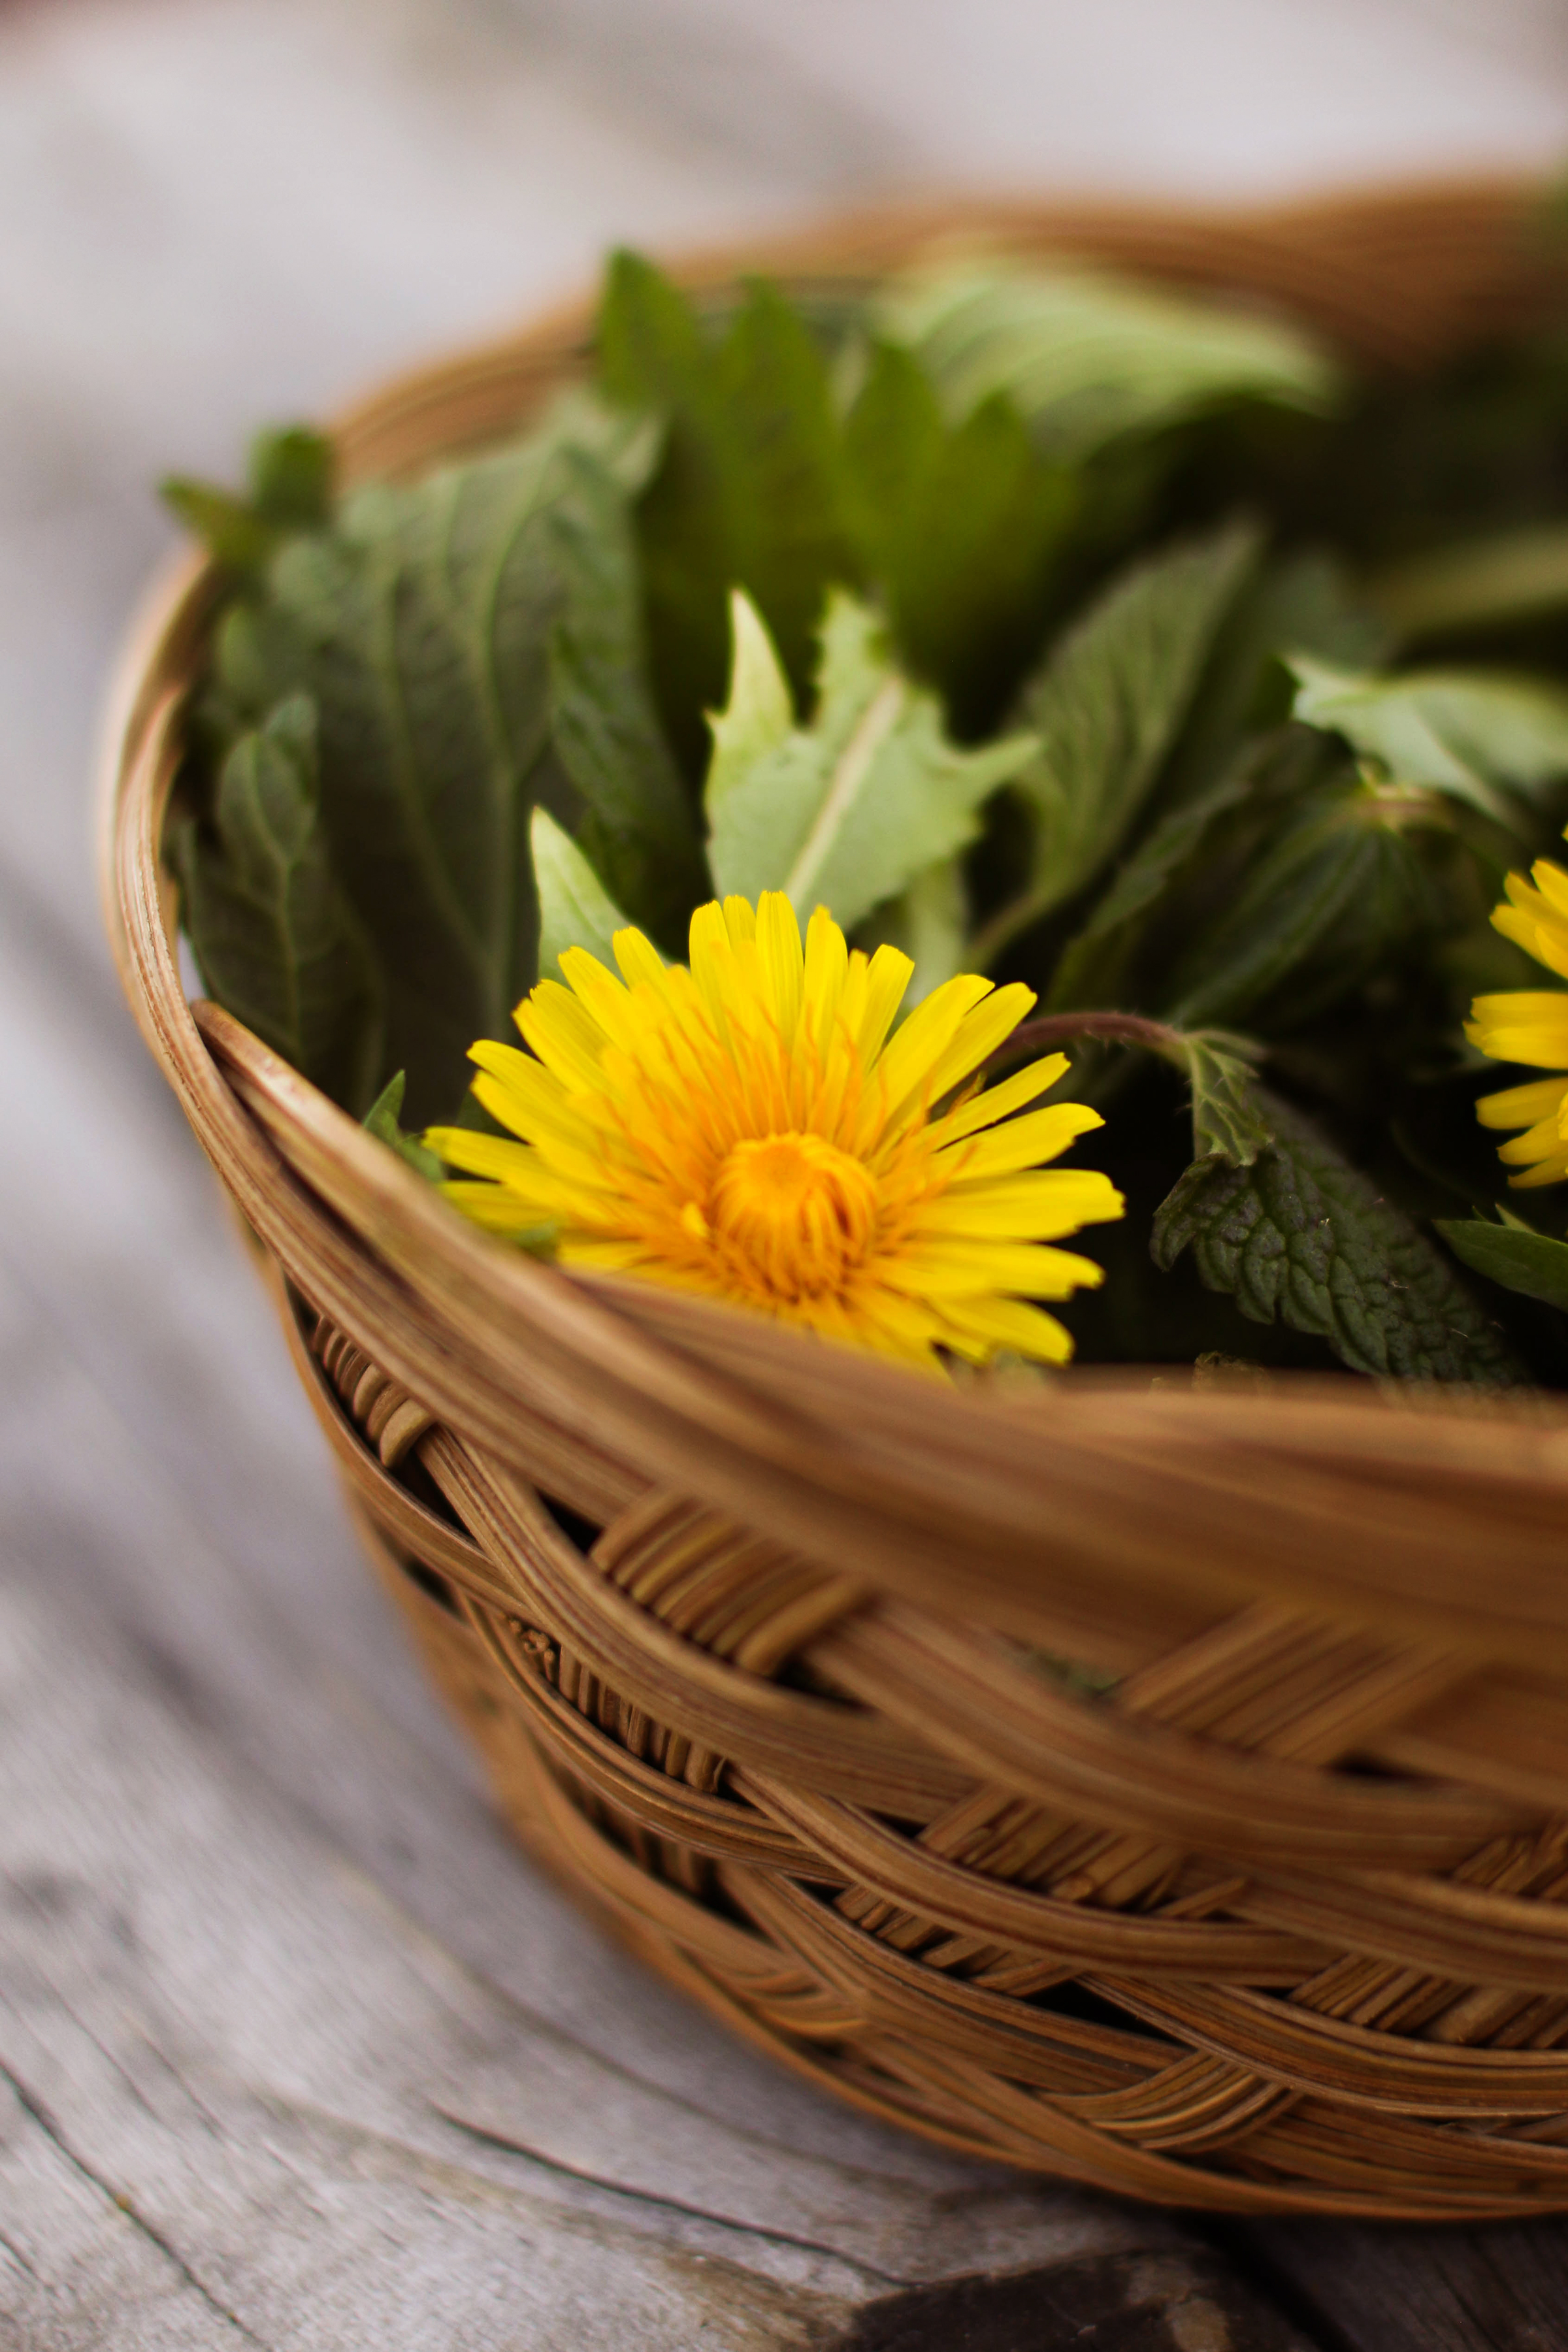 wicker-basket-of-fresh-dandelion-blossoms-and-leaves-and-stinging-nettles